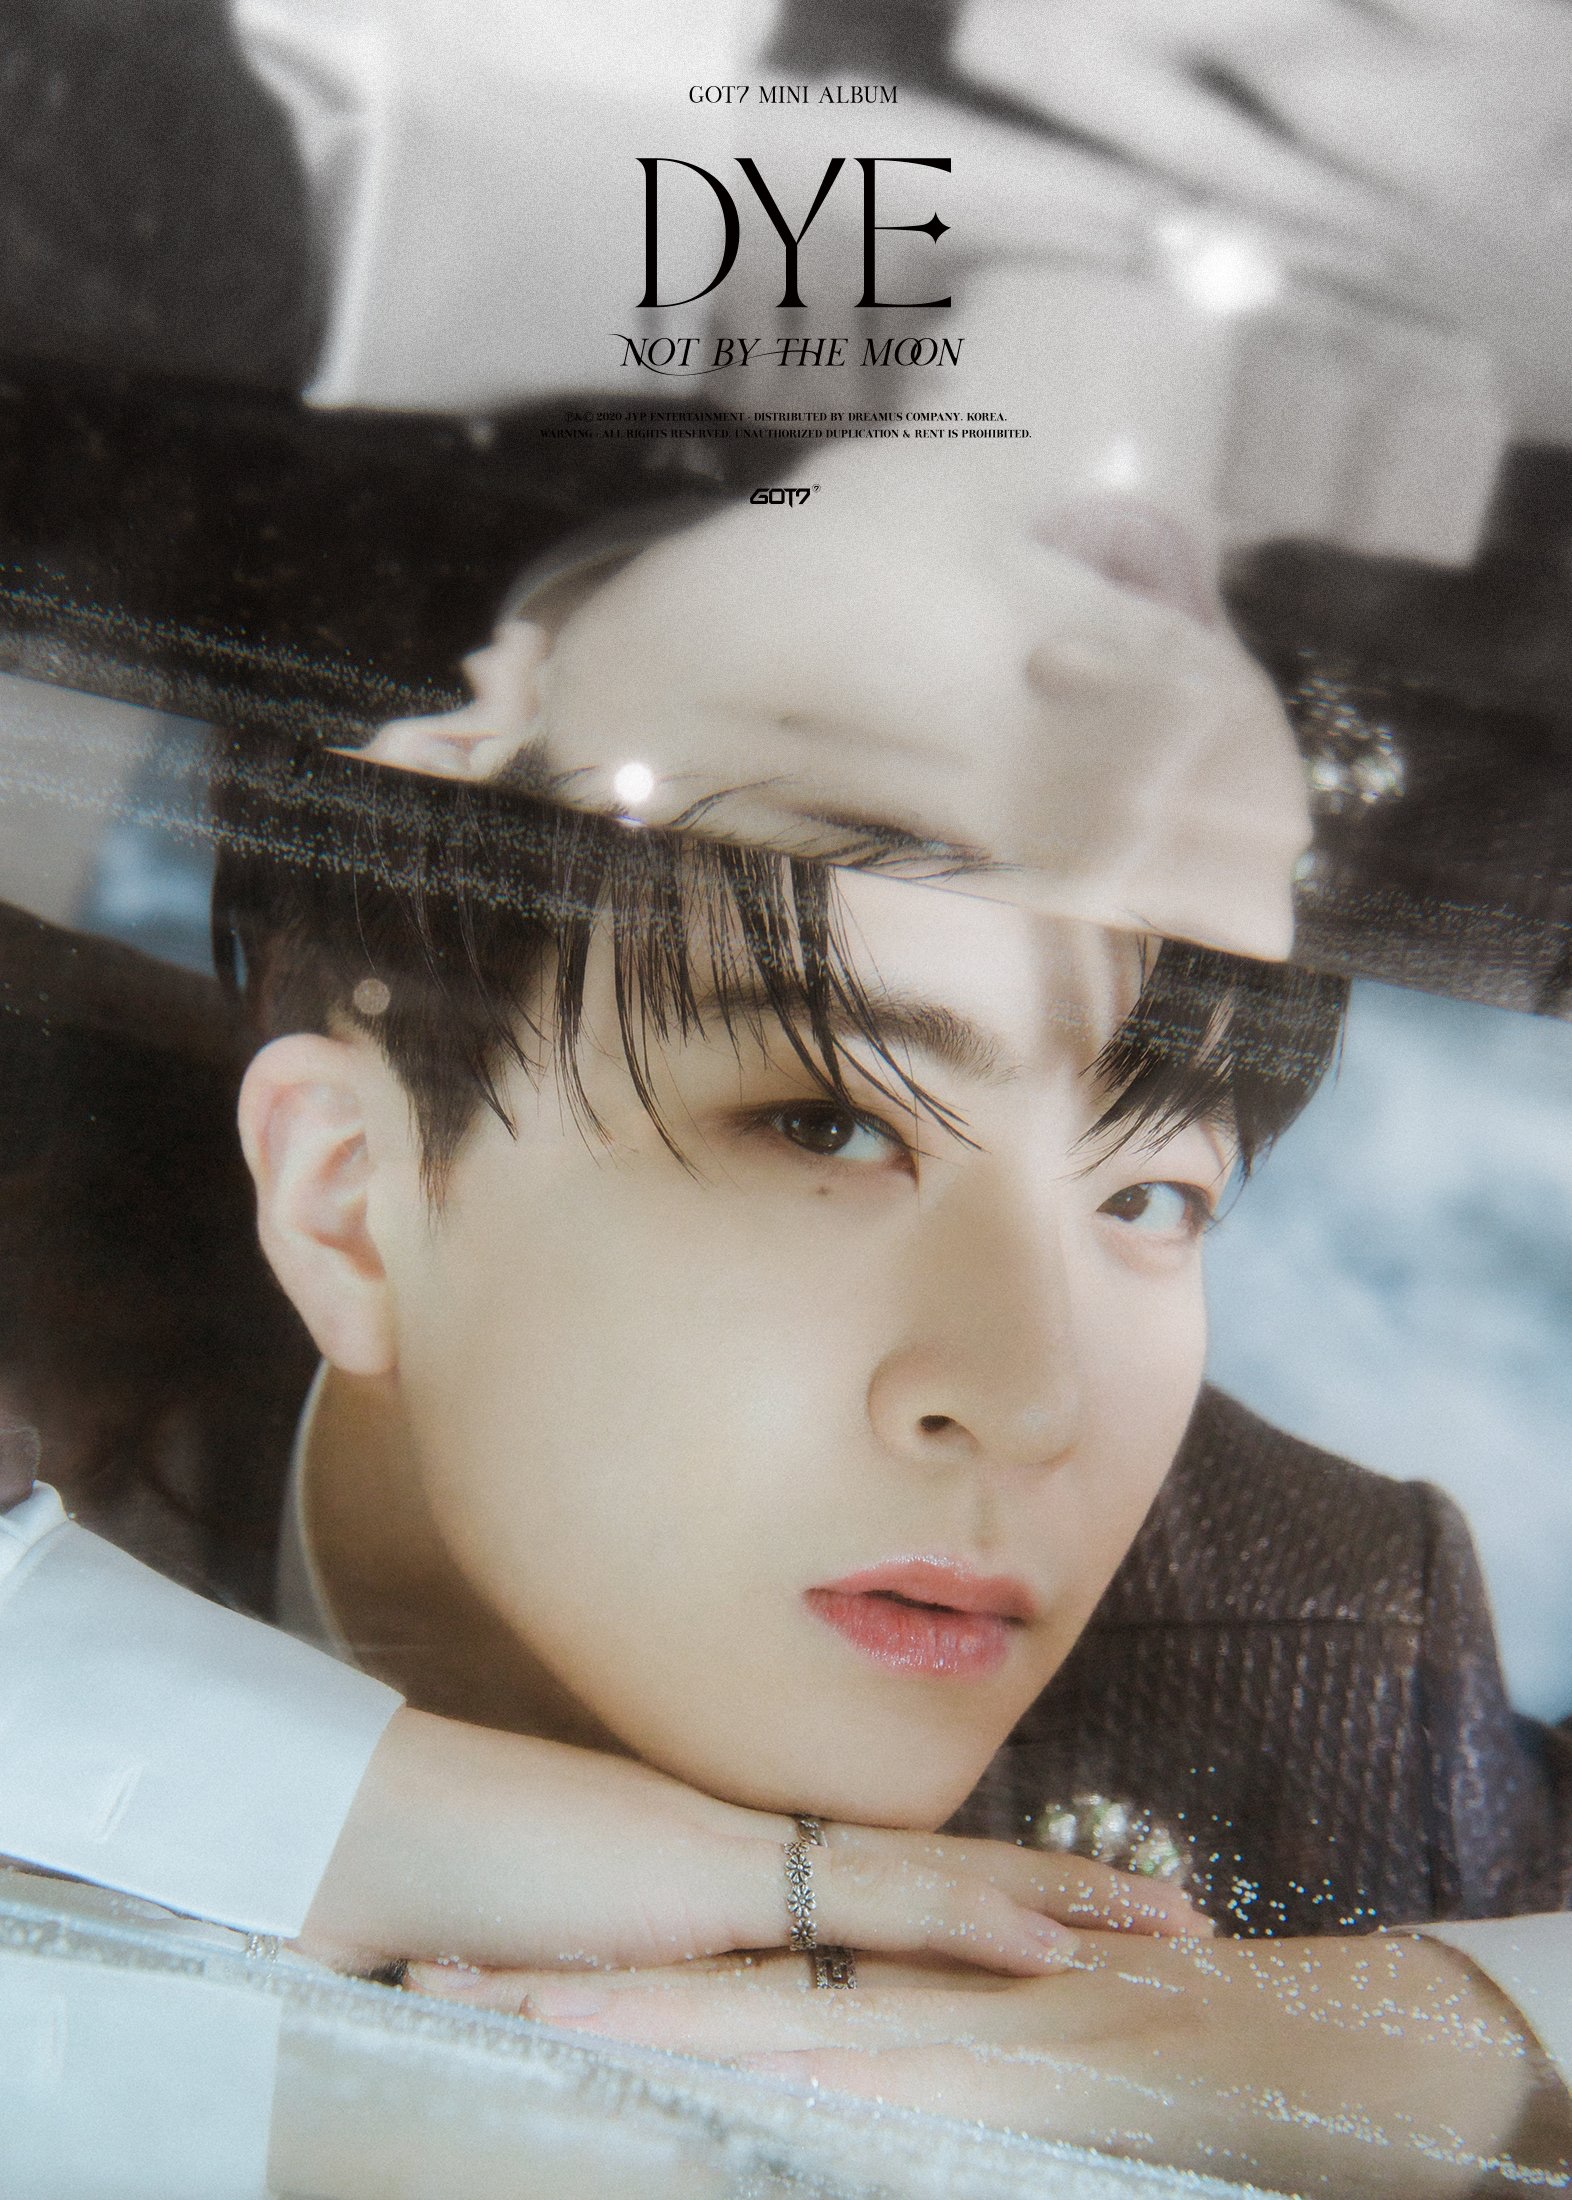 Youngjae concept photo for DYE.